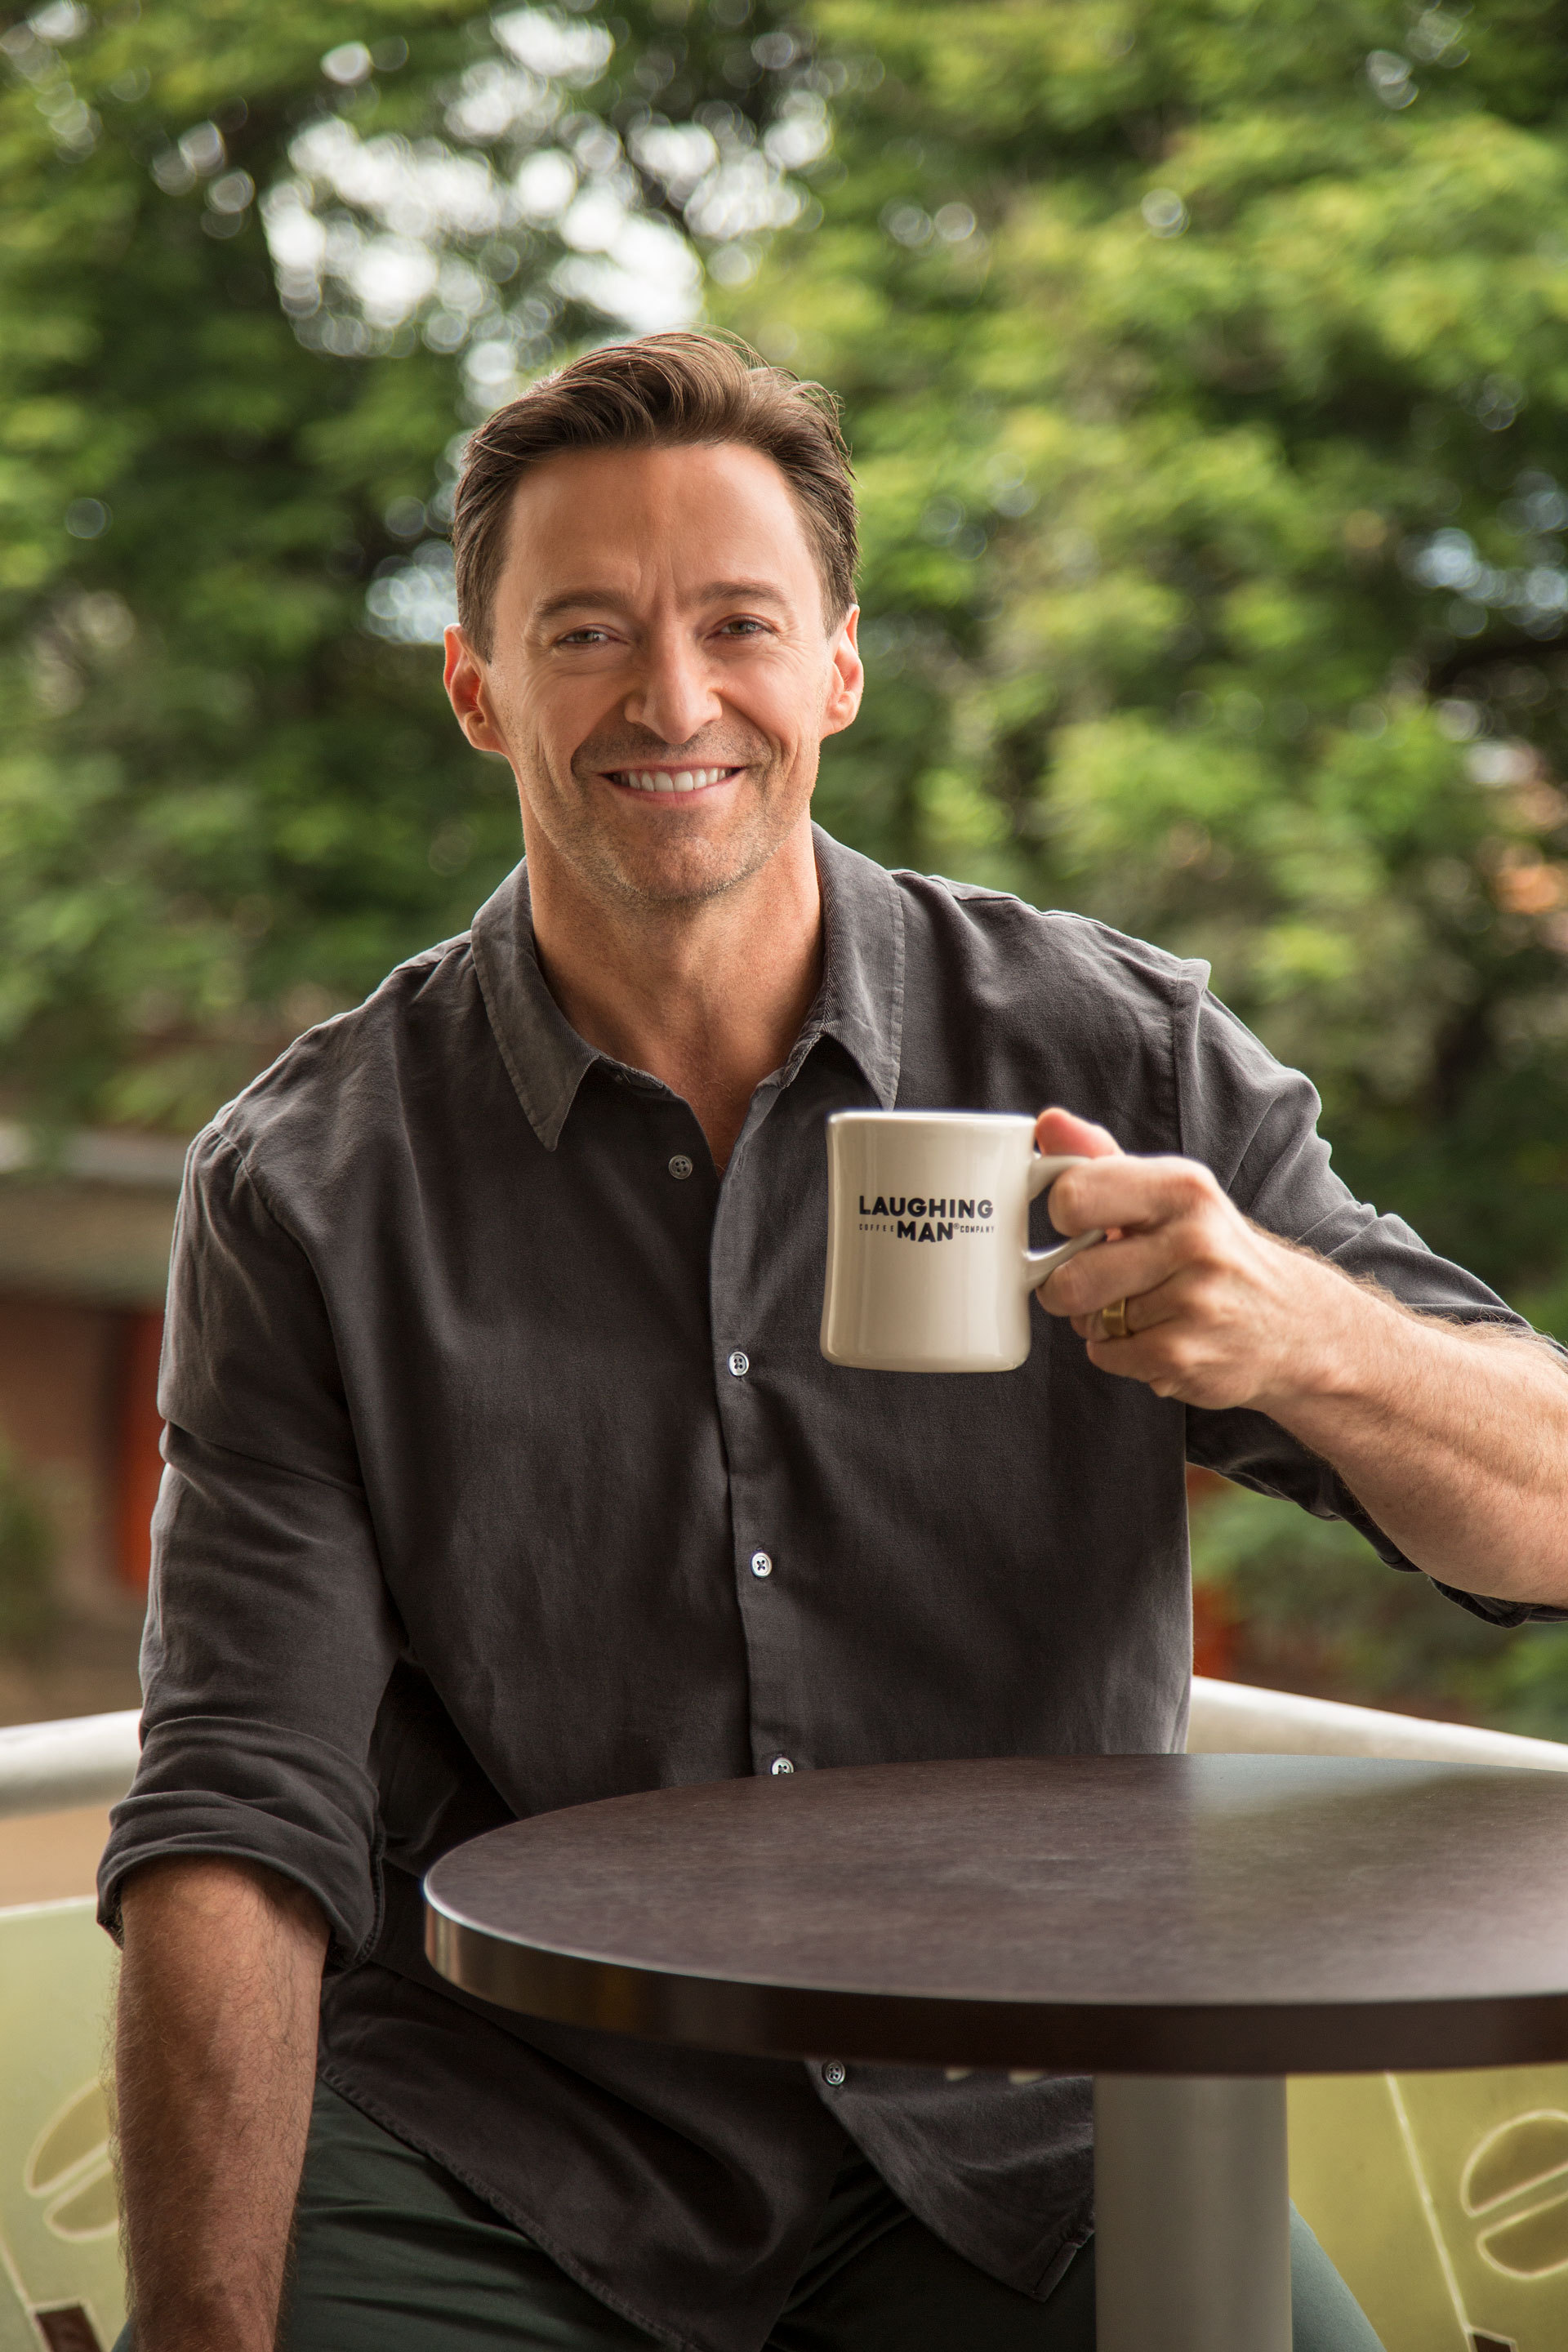 Laughing ManR Coffee And Hugh Jackman Inspire Consumers To Make Every Cup Count In Support Of Farming Communities